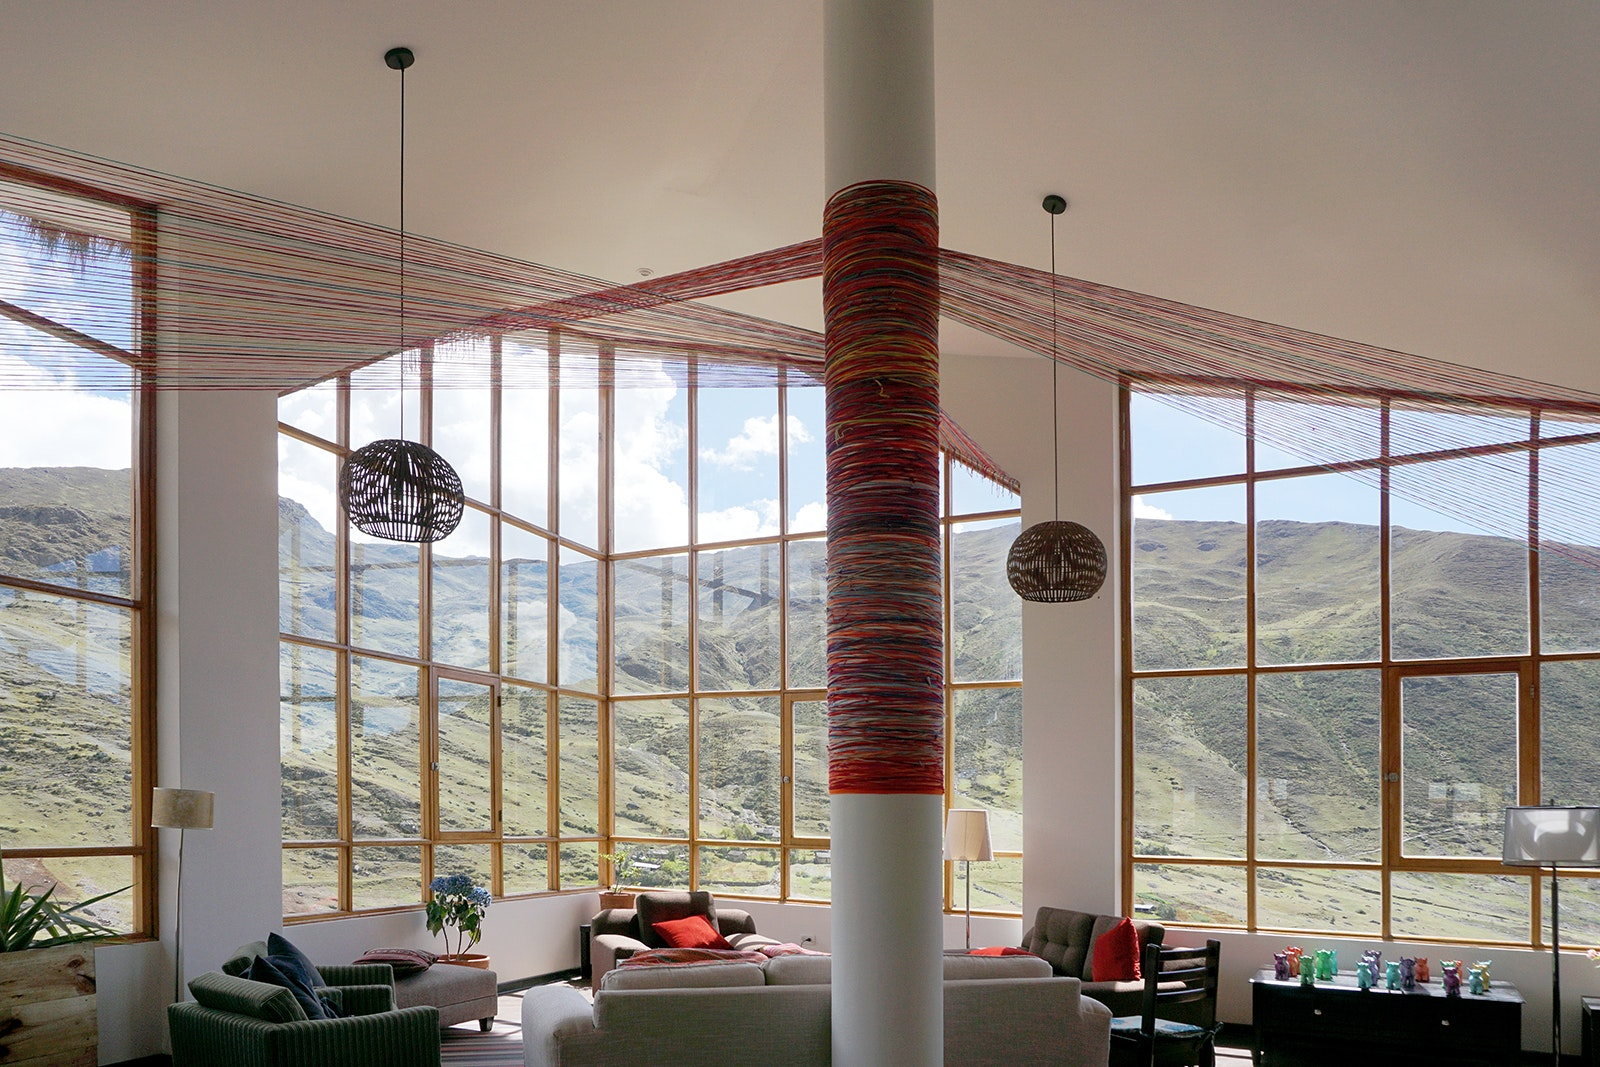 The common room at the Huacahuasi Lodge is an ideal place to get lost in a mountain daydream.